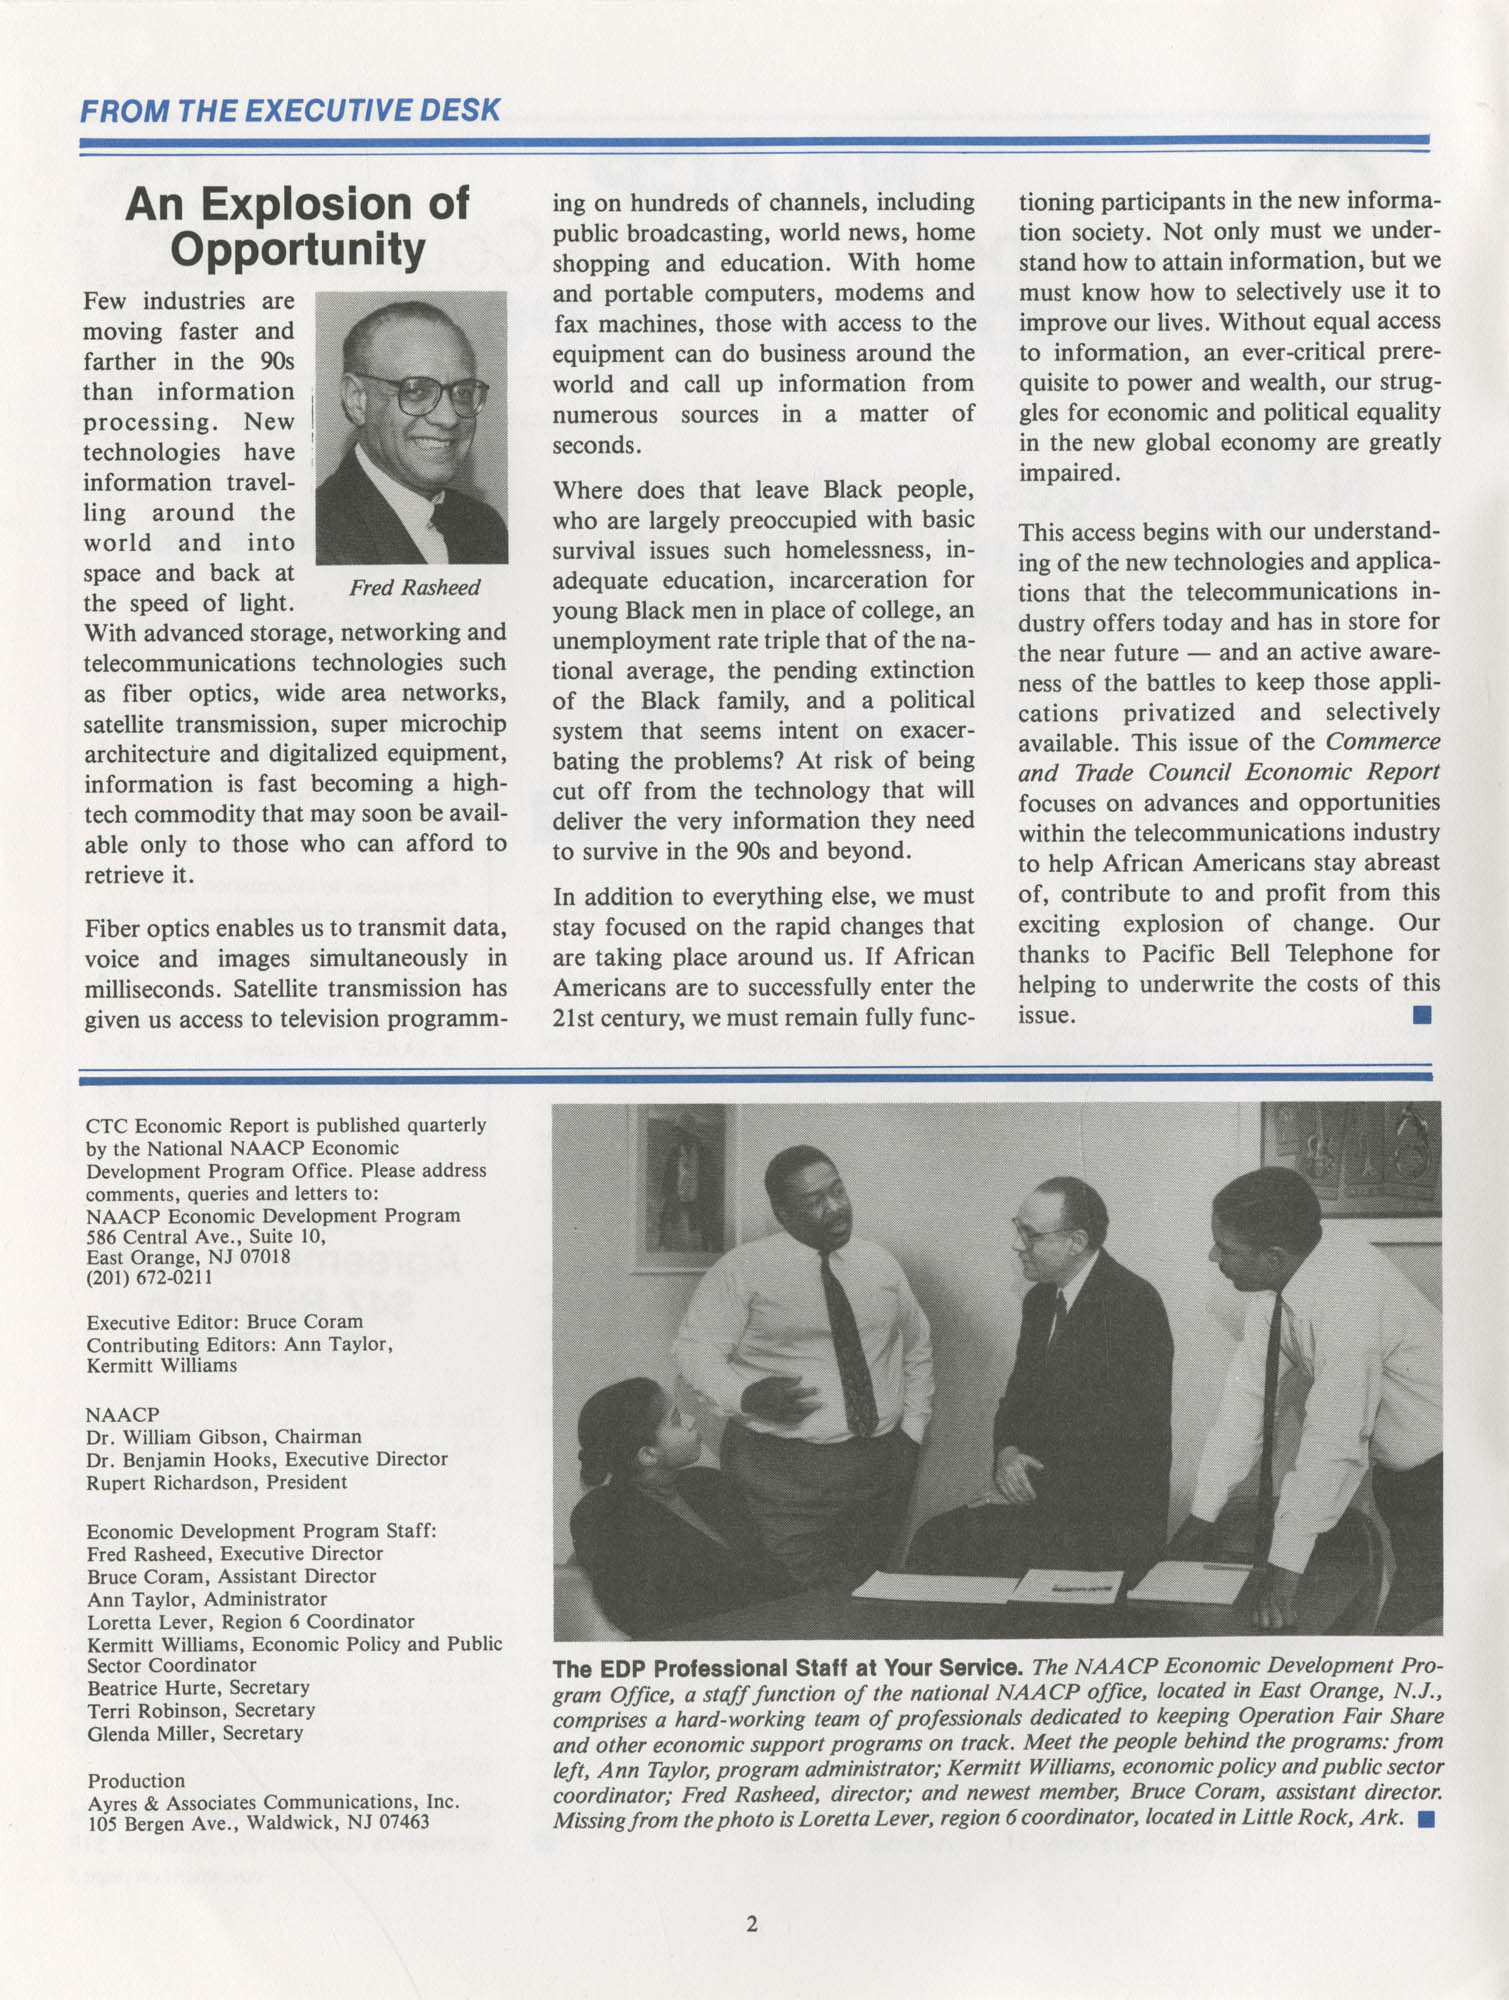 NAACP Commerce and Trade Council Economic Report, Vol. 1, No. 2, Spring 1992, Page 2